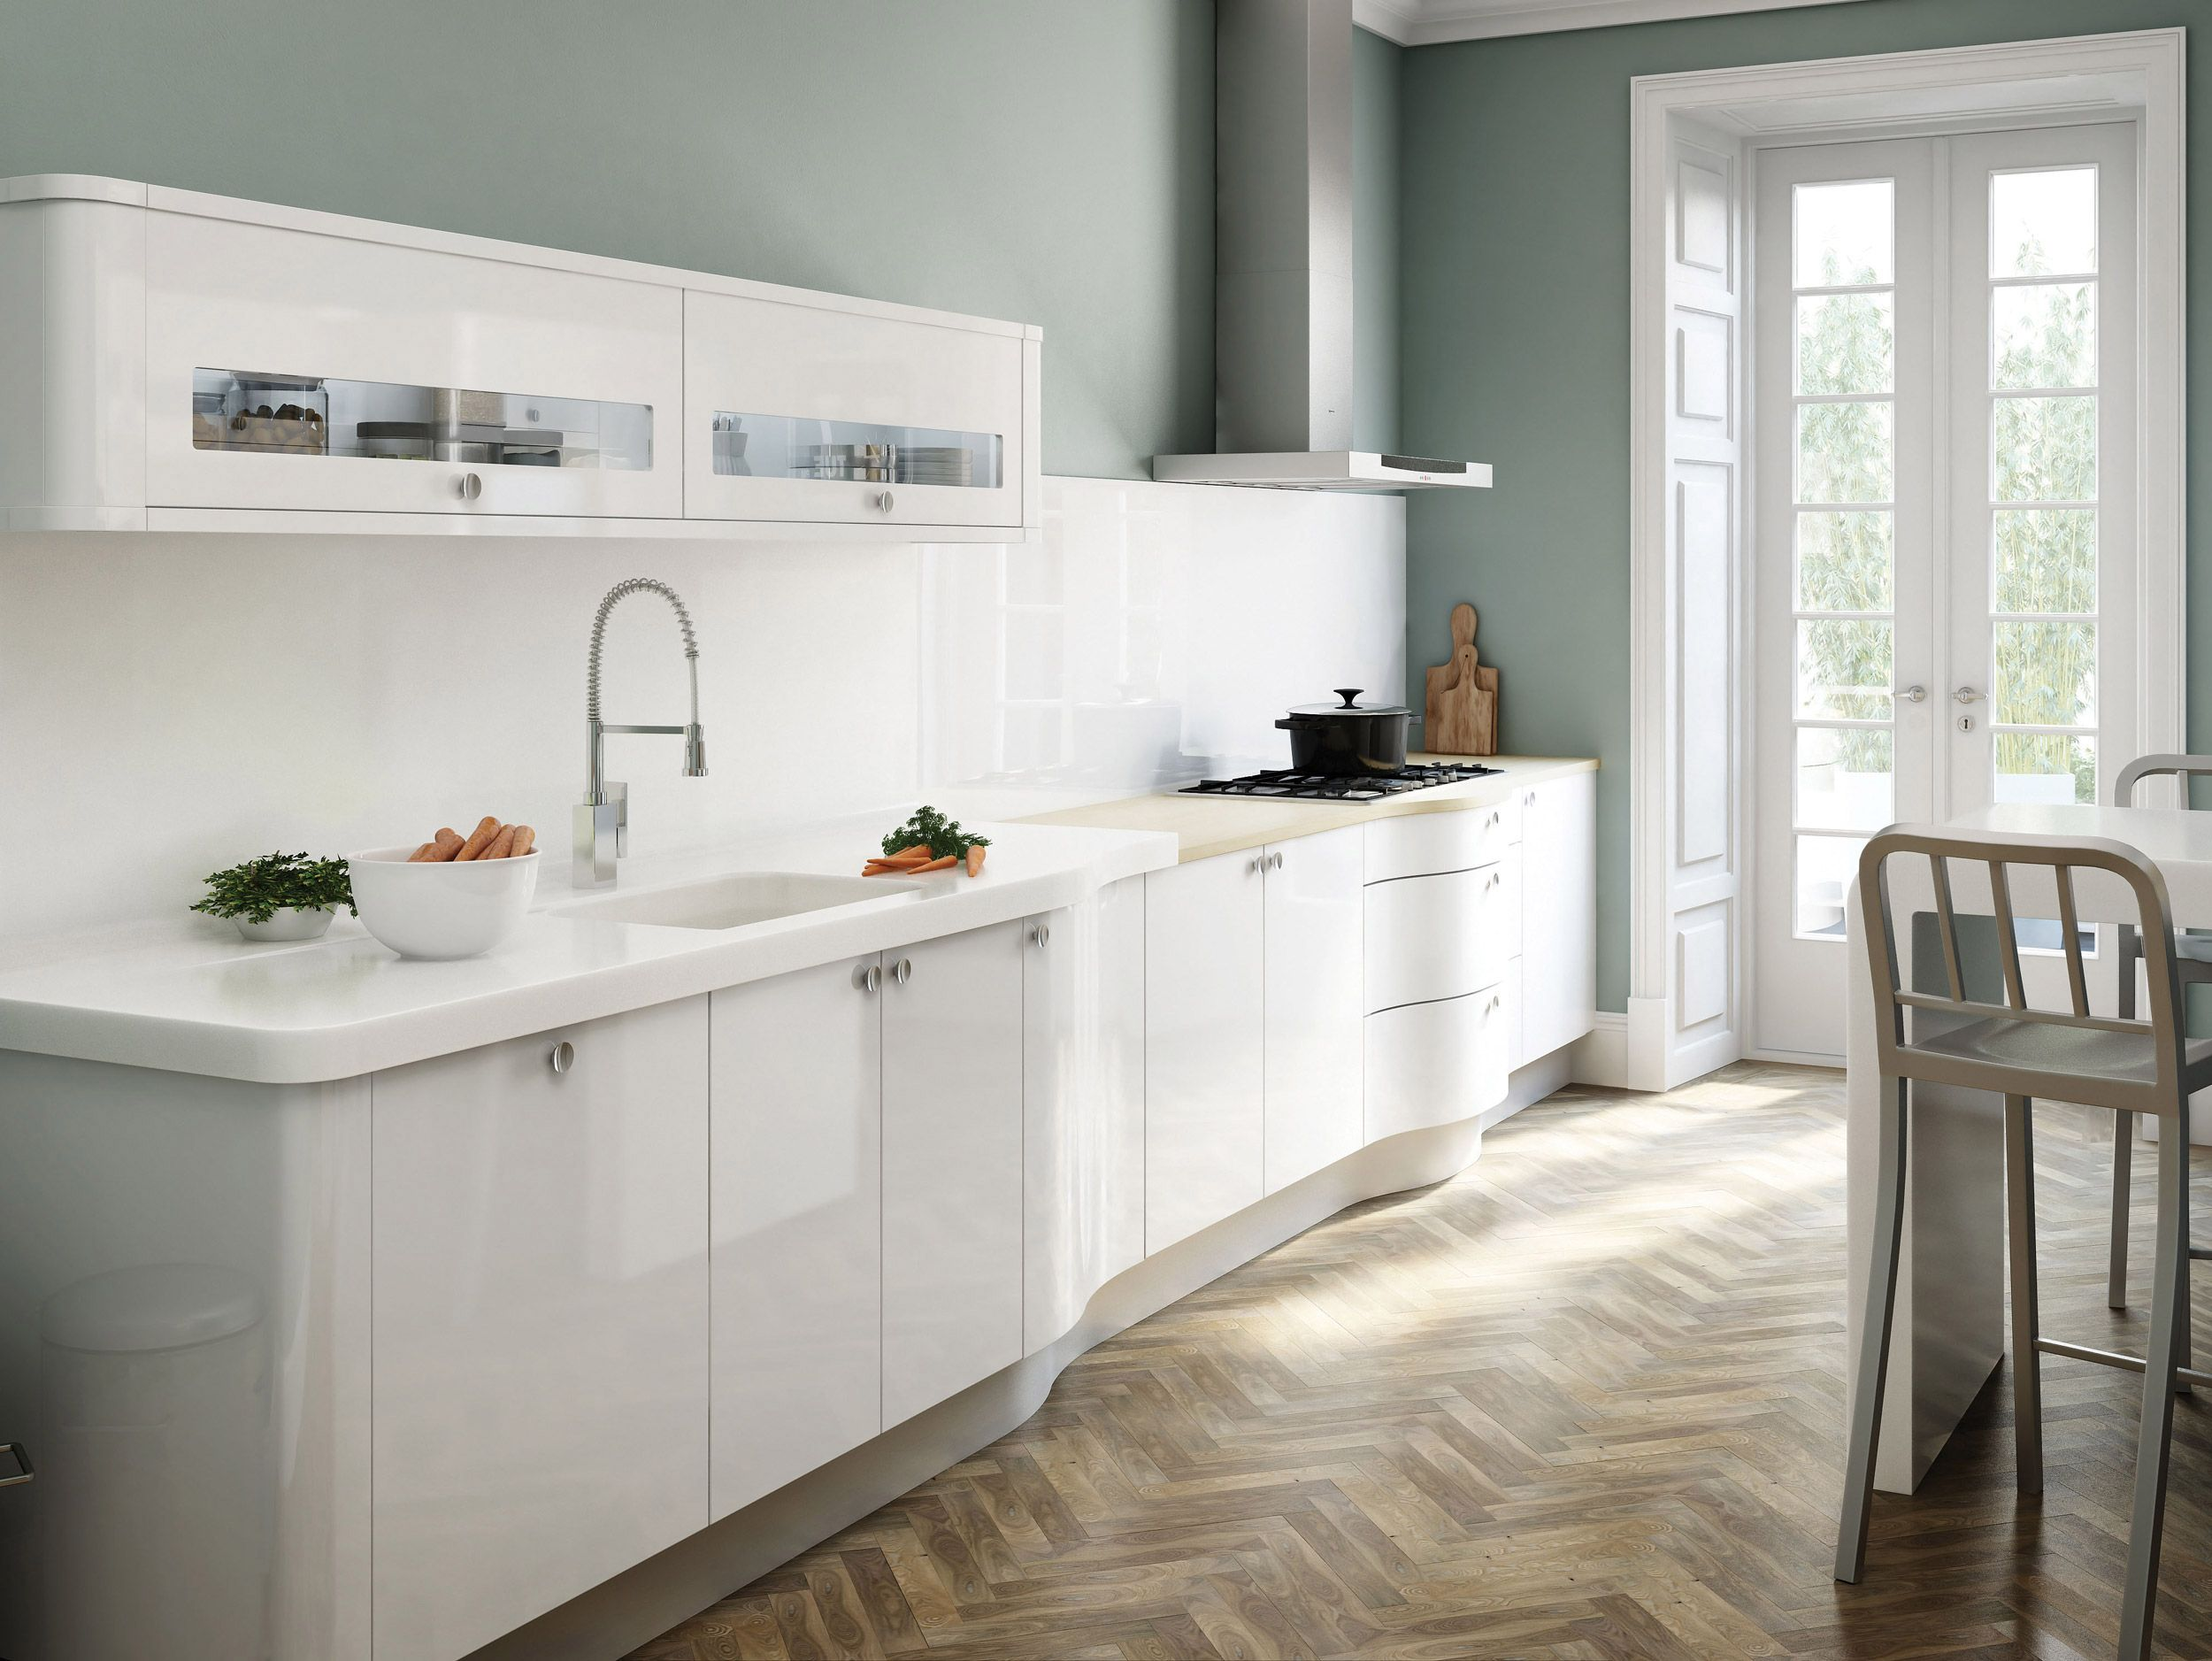 ^ Beautiful White Kitchens With crylic abinets s Well s Open ...